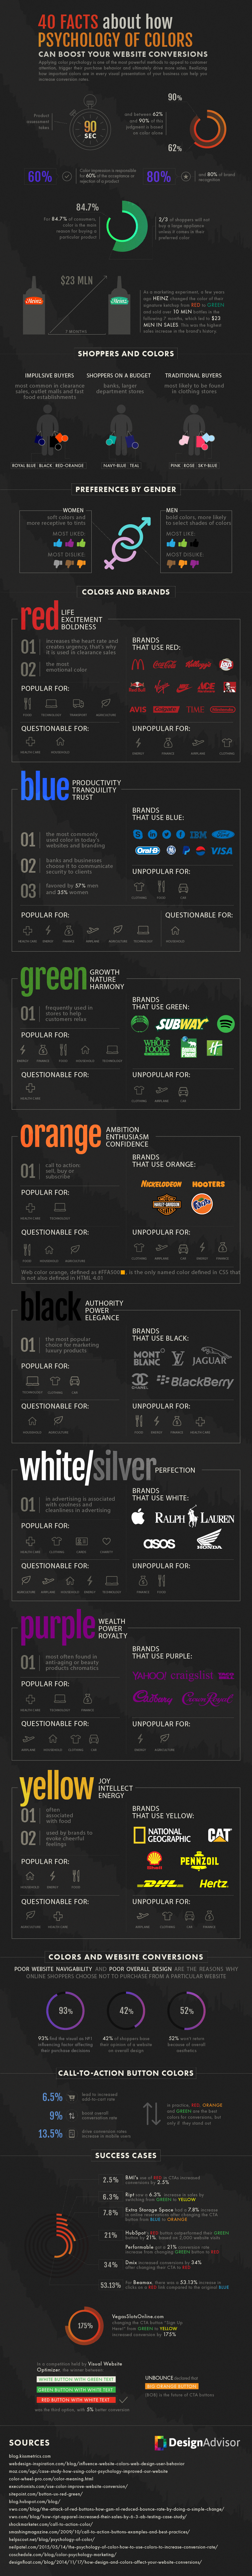 website color psychology. Visit source link at the end of this article for more information.